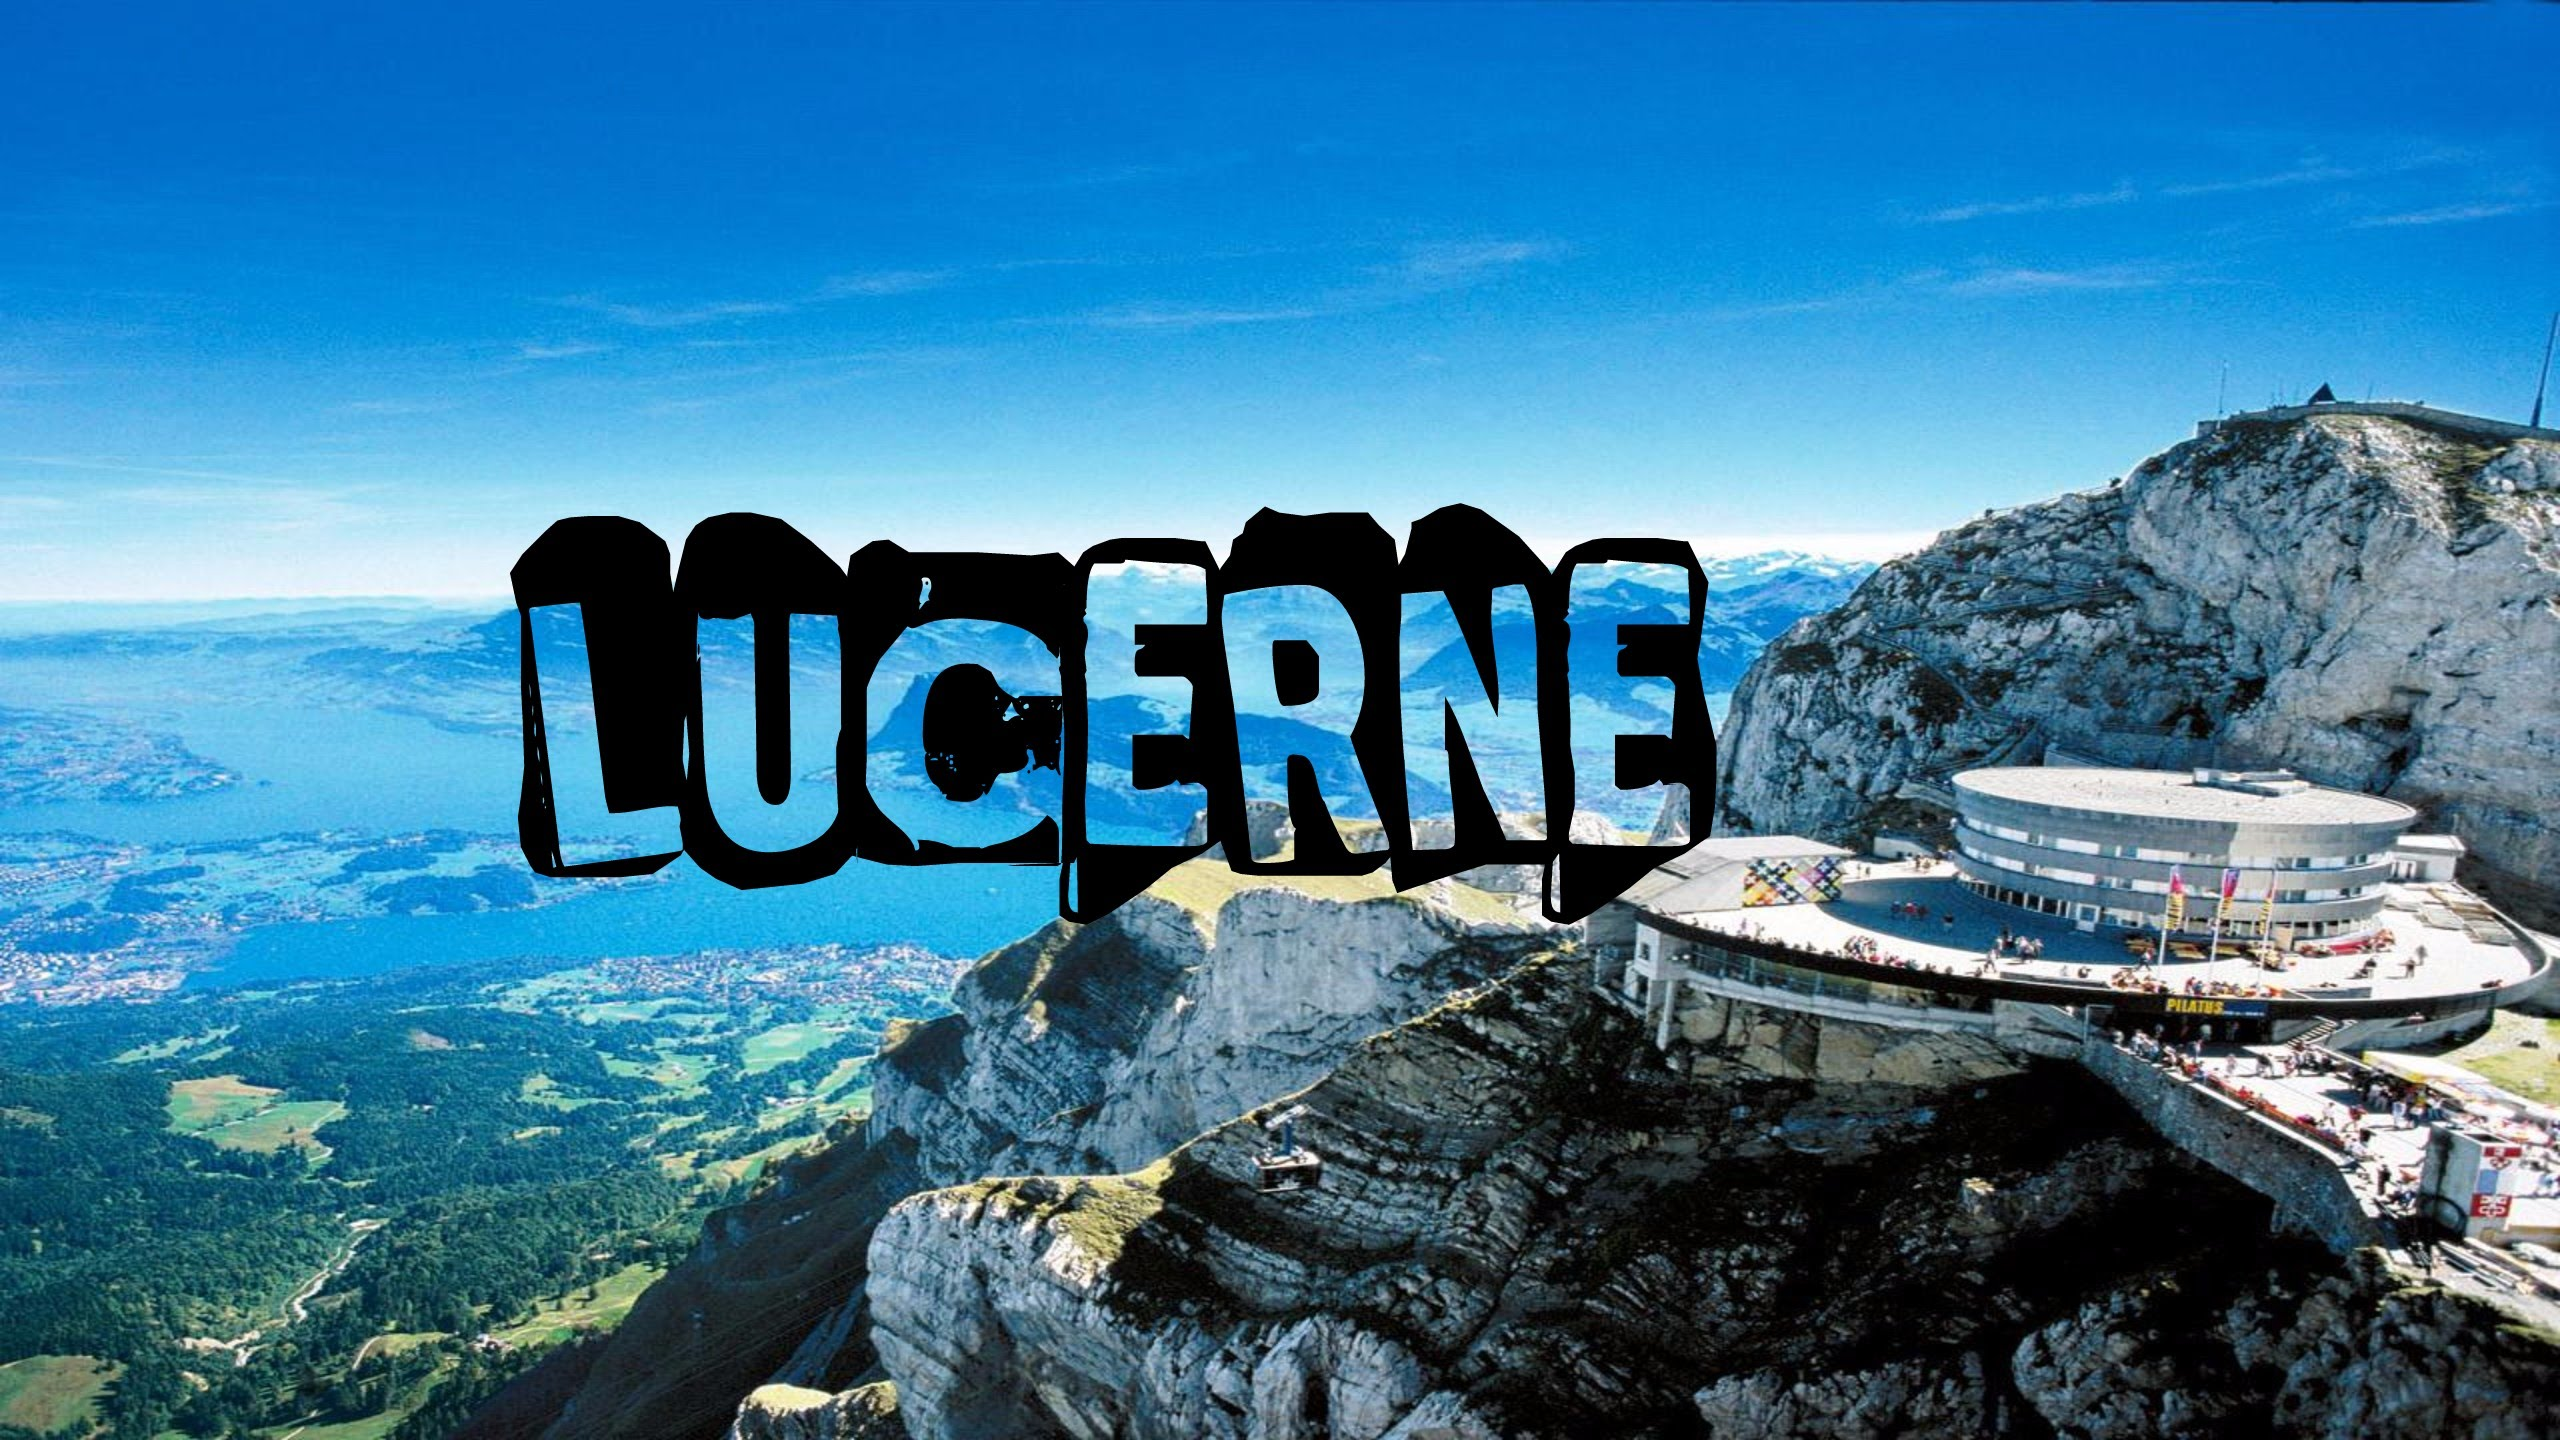 Top 10 things to do in Lucerne, Switzerland. Visit Lucerne